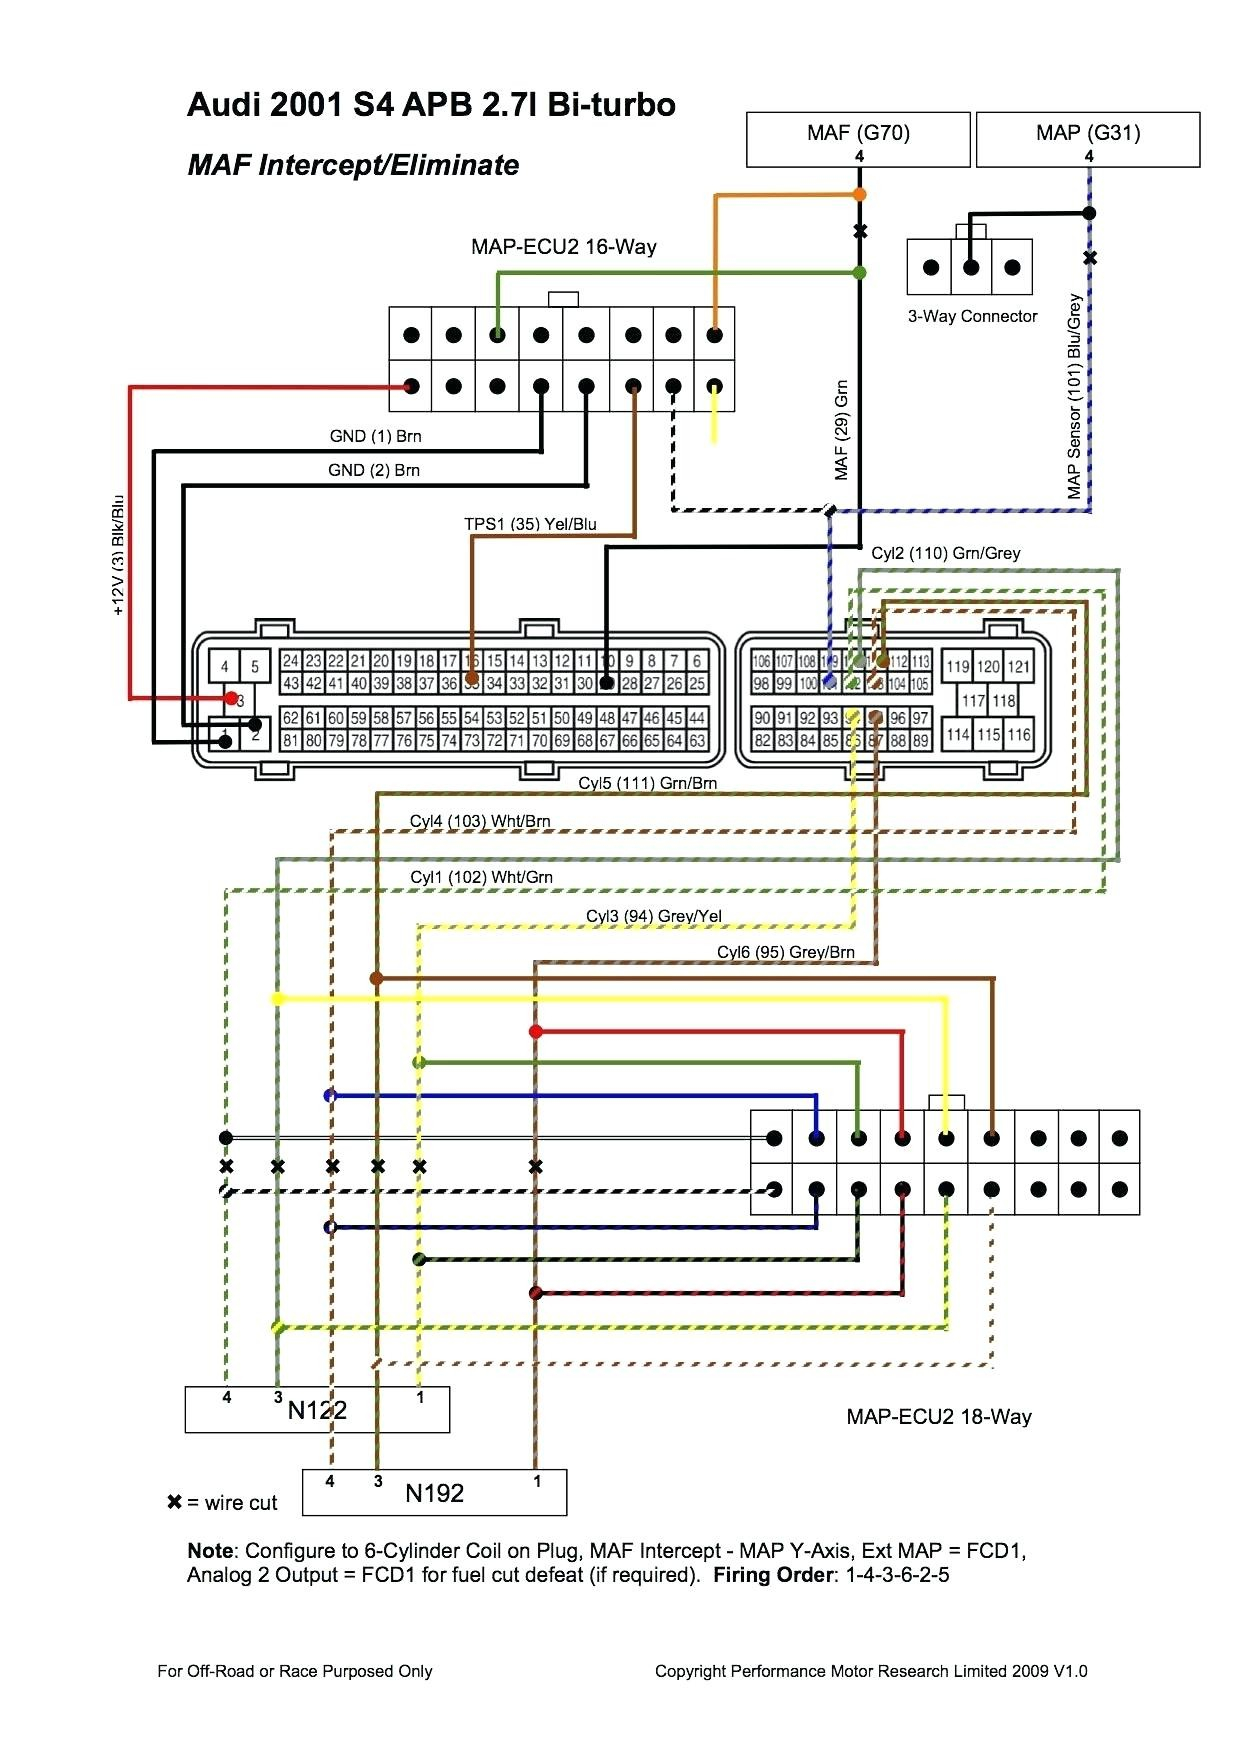 diagram] wiring diagram for 2002 dodge dakota radio free picture full  version hd quality free picture - dinghywiringpdf.evalinka.fr  evalinka